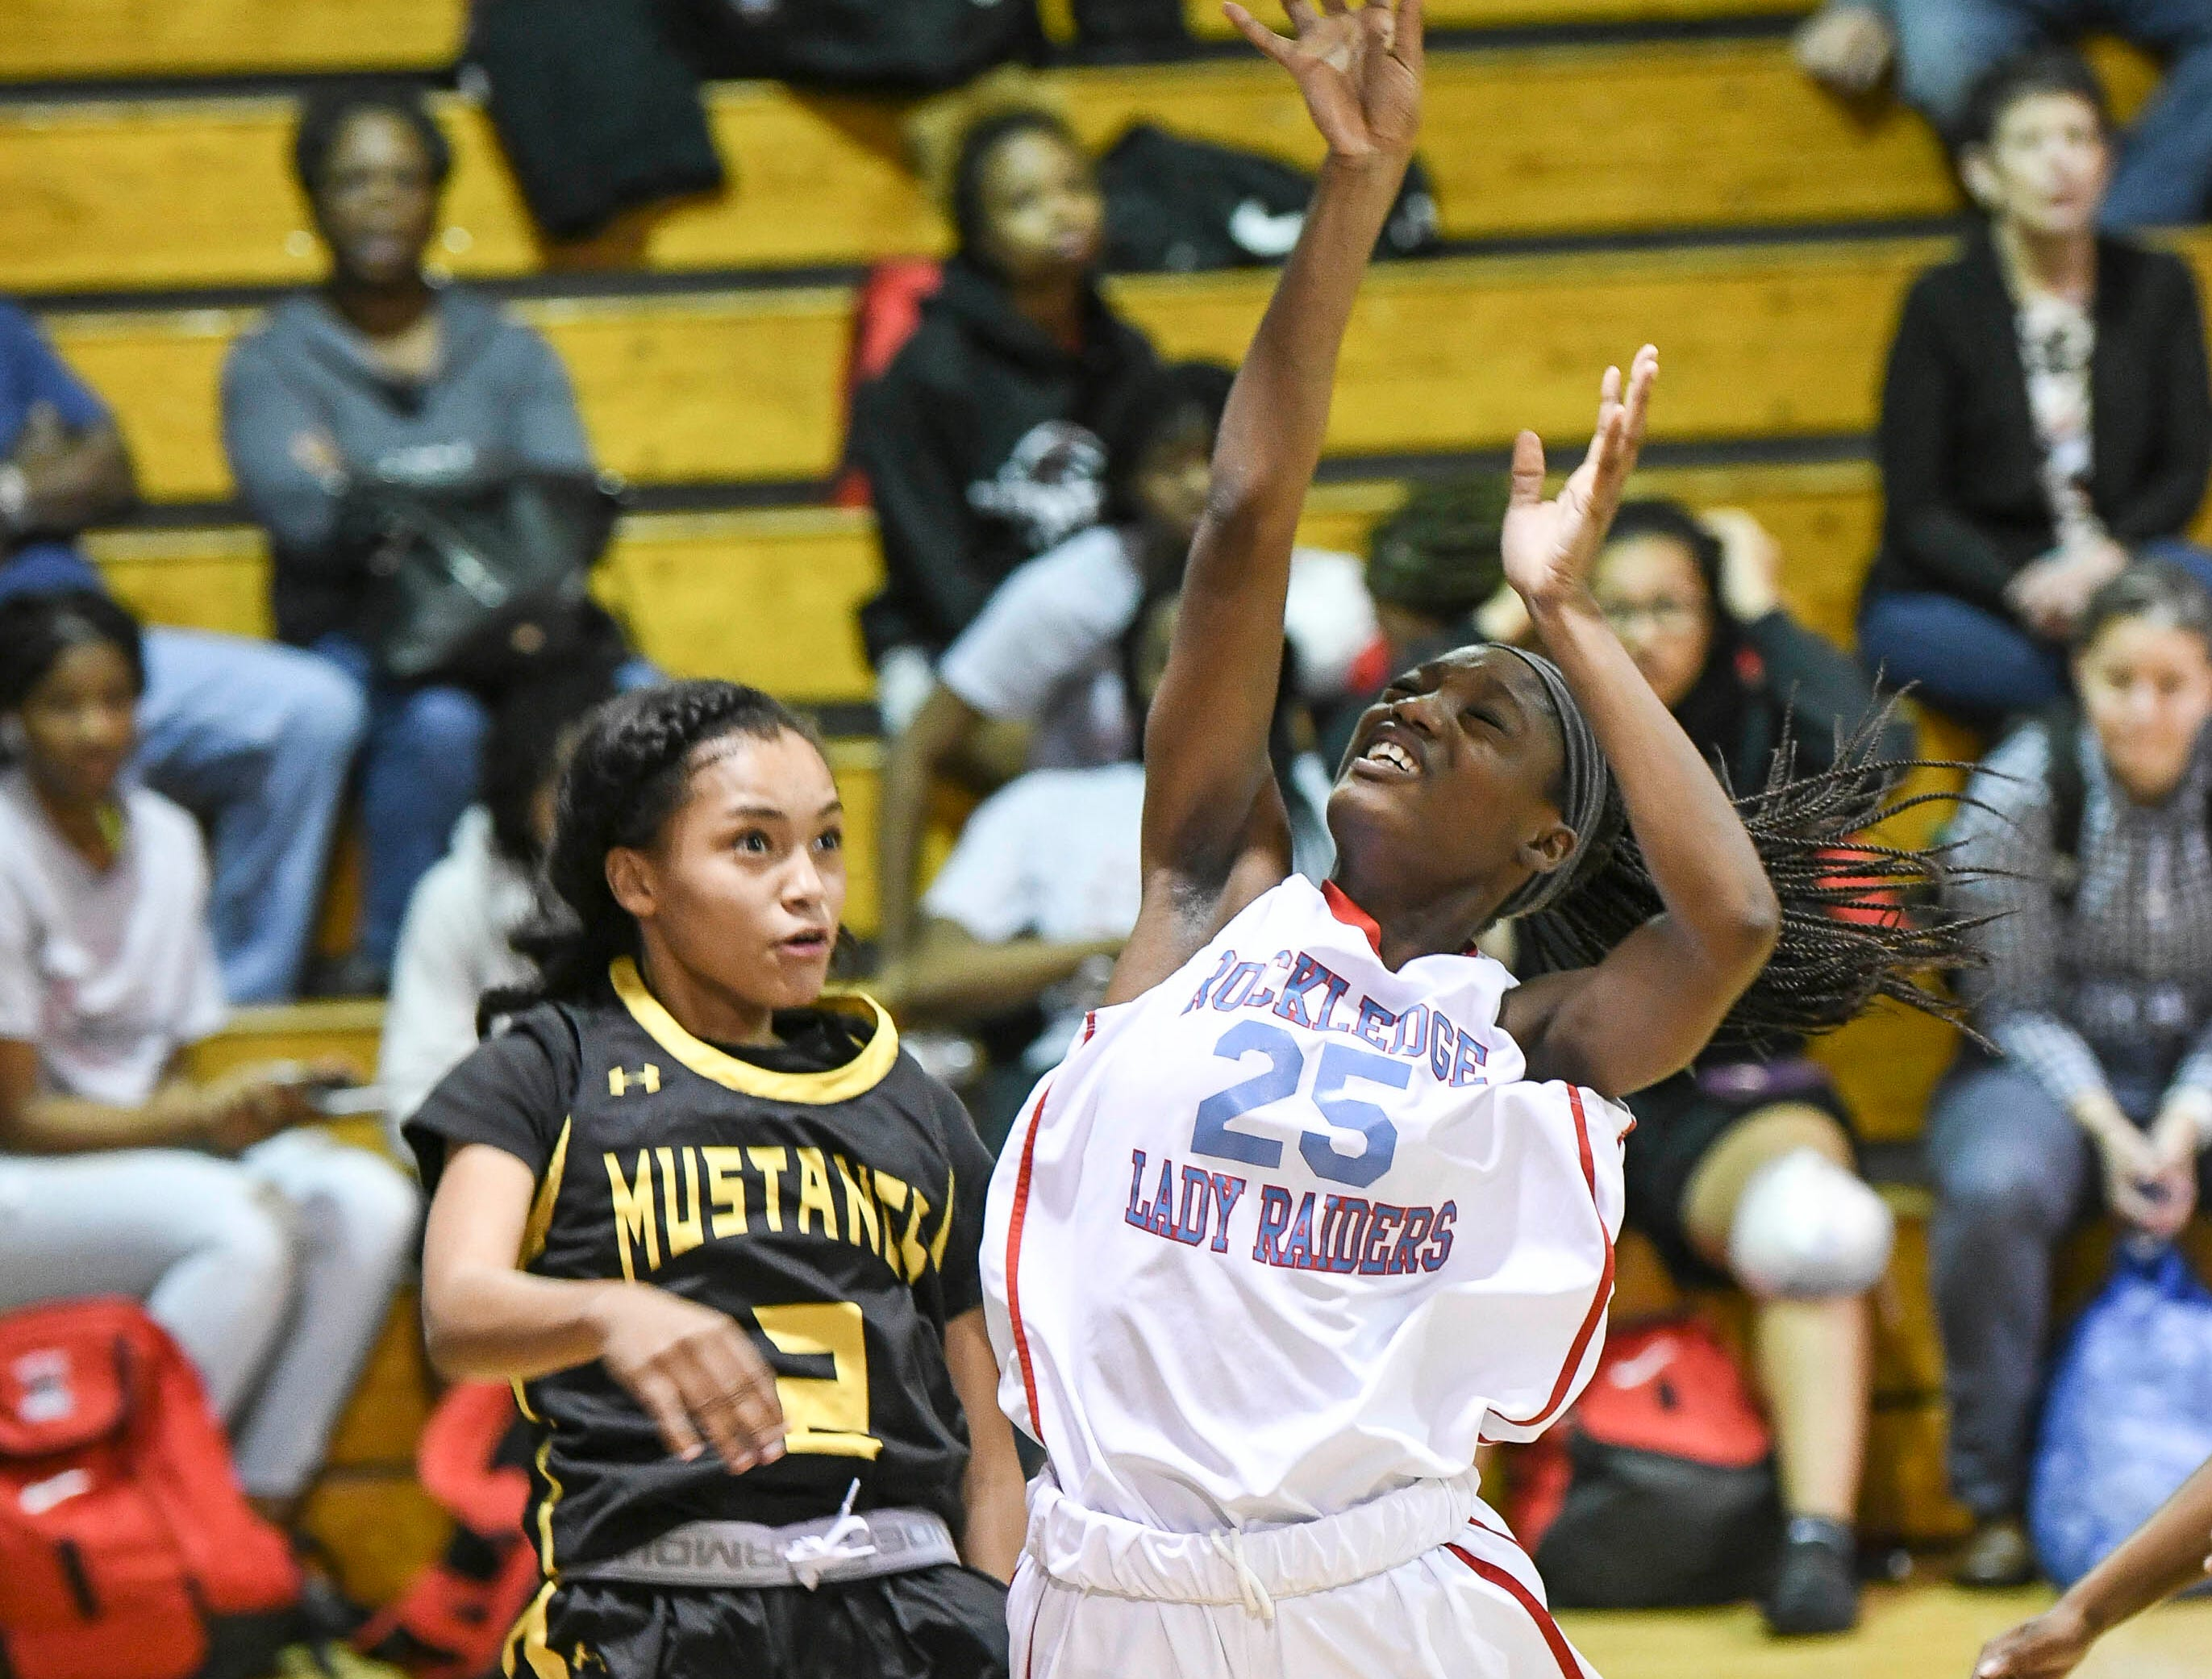 A'vonia Oquendo-Waters of Rockledge shoots over Merritt Island defender Shakira Fernandez during Thursday's District 14-6A basketball tournament at Rockledge High School.